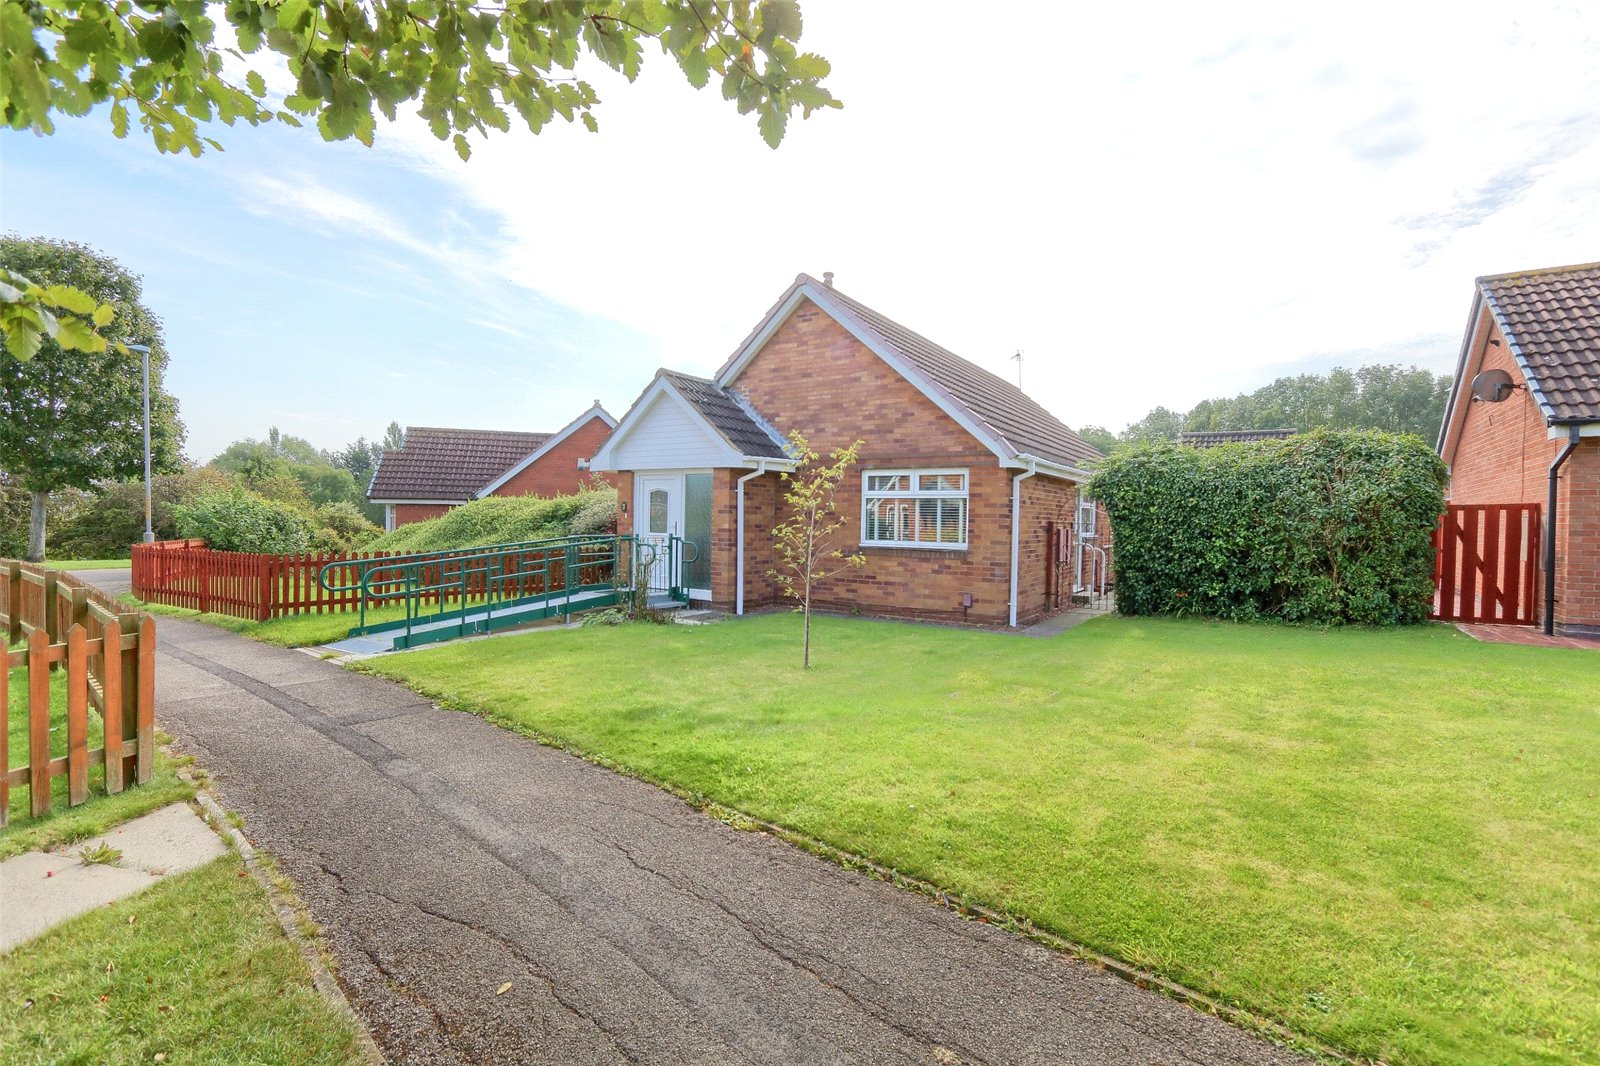 2 bed bungalow for sale in Kinloss Walk, Thornaby - Property Image 1